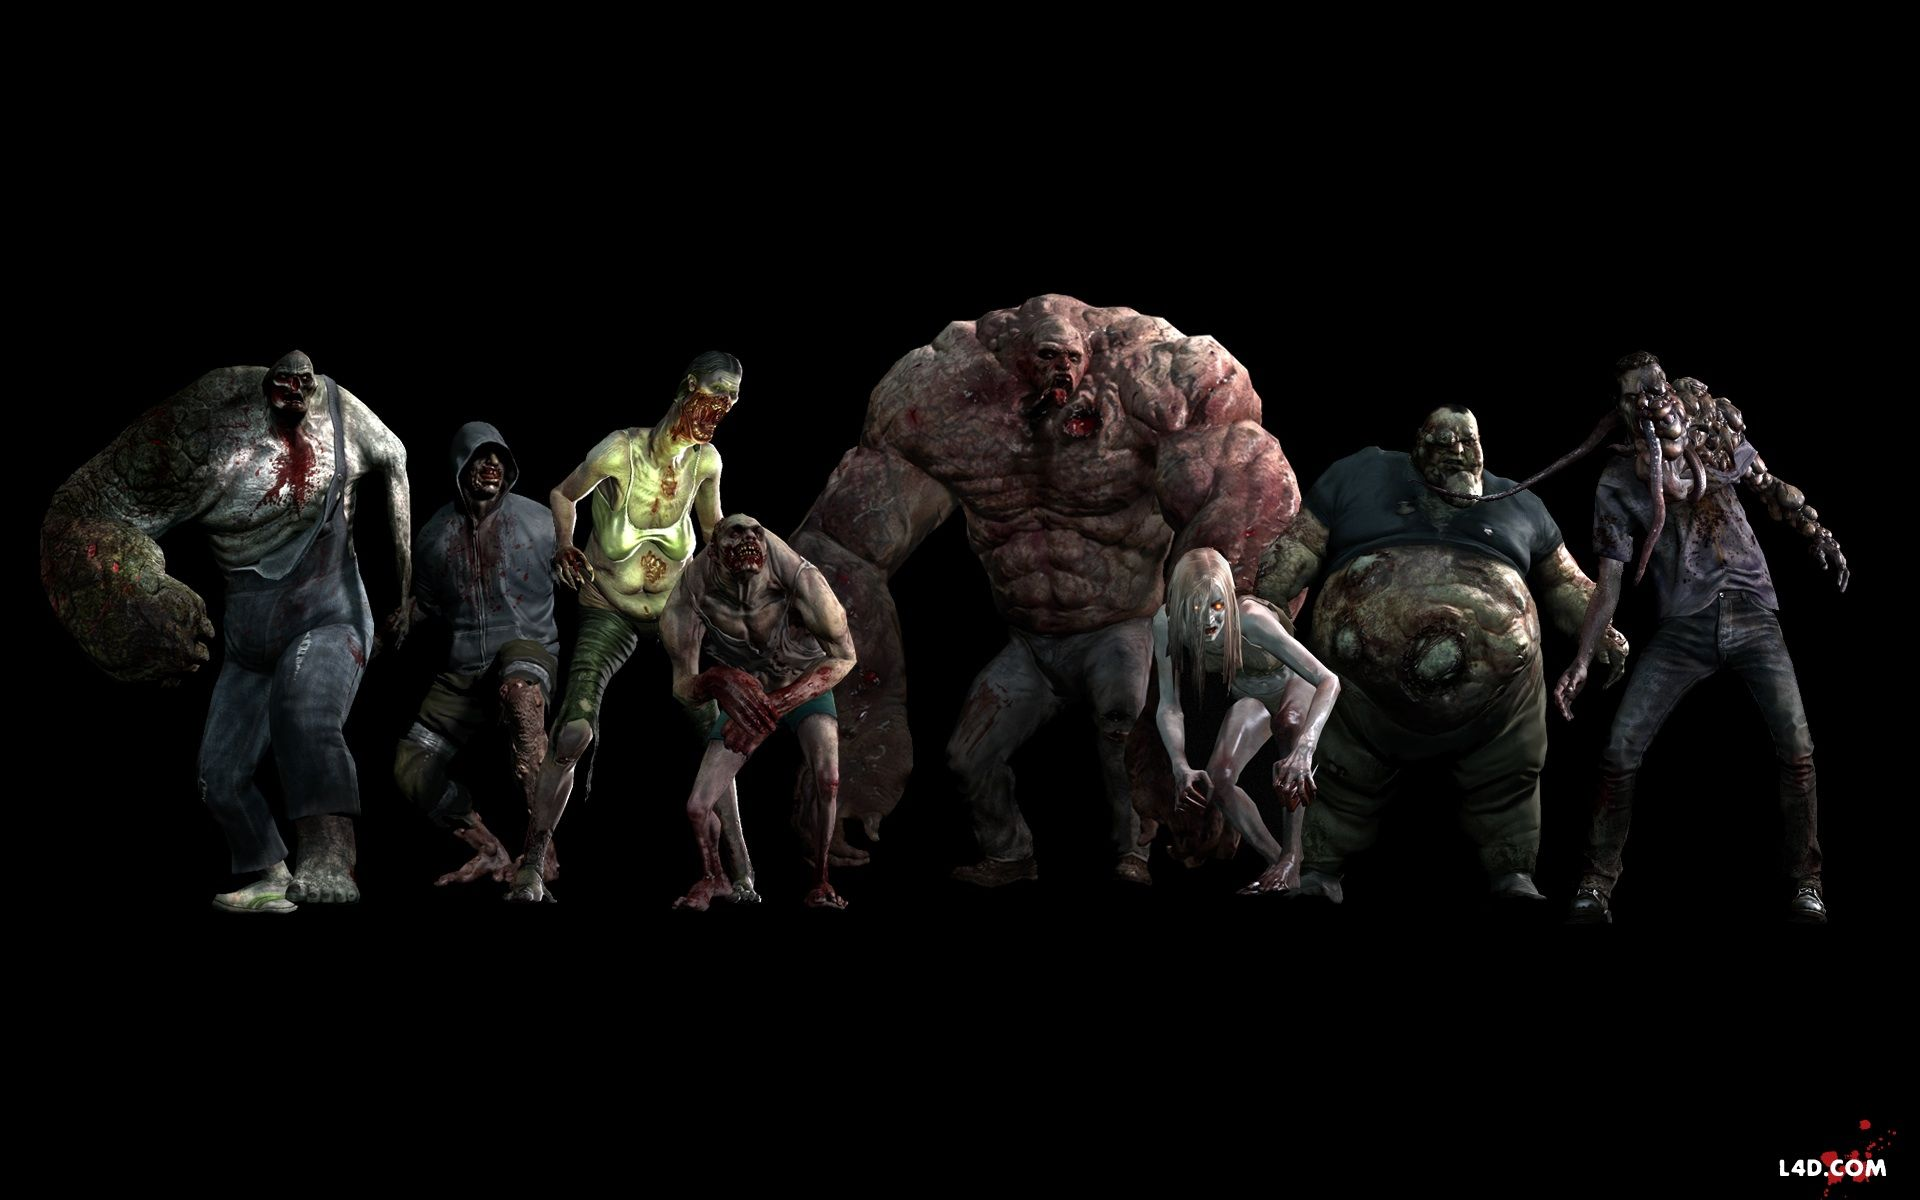 L4D 2 monsters spitter, jockey, charger, tank, boomer and witch